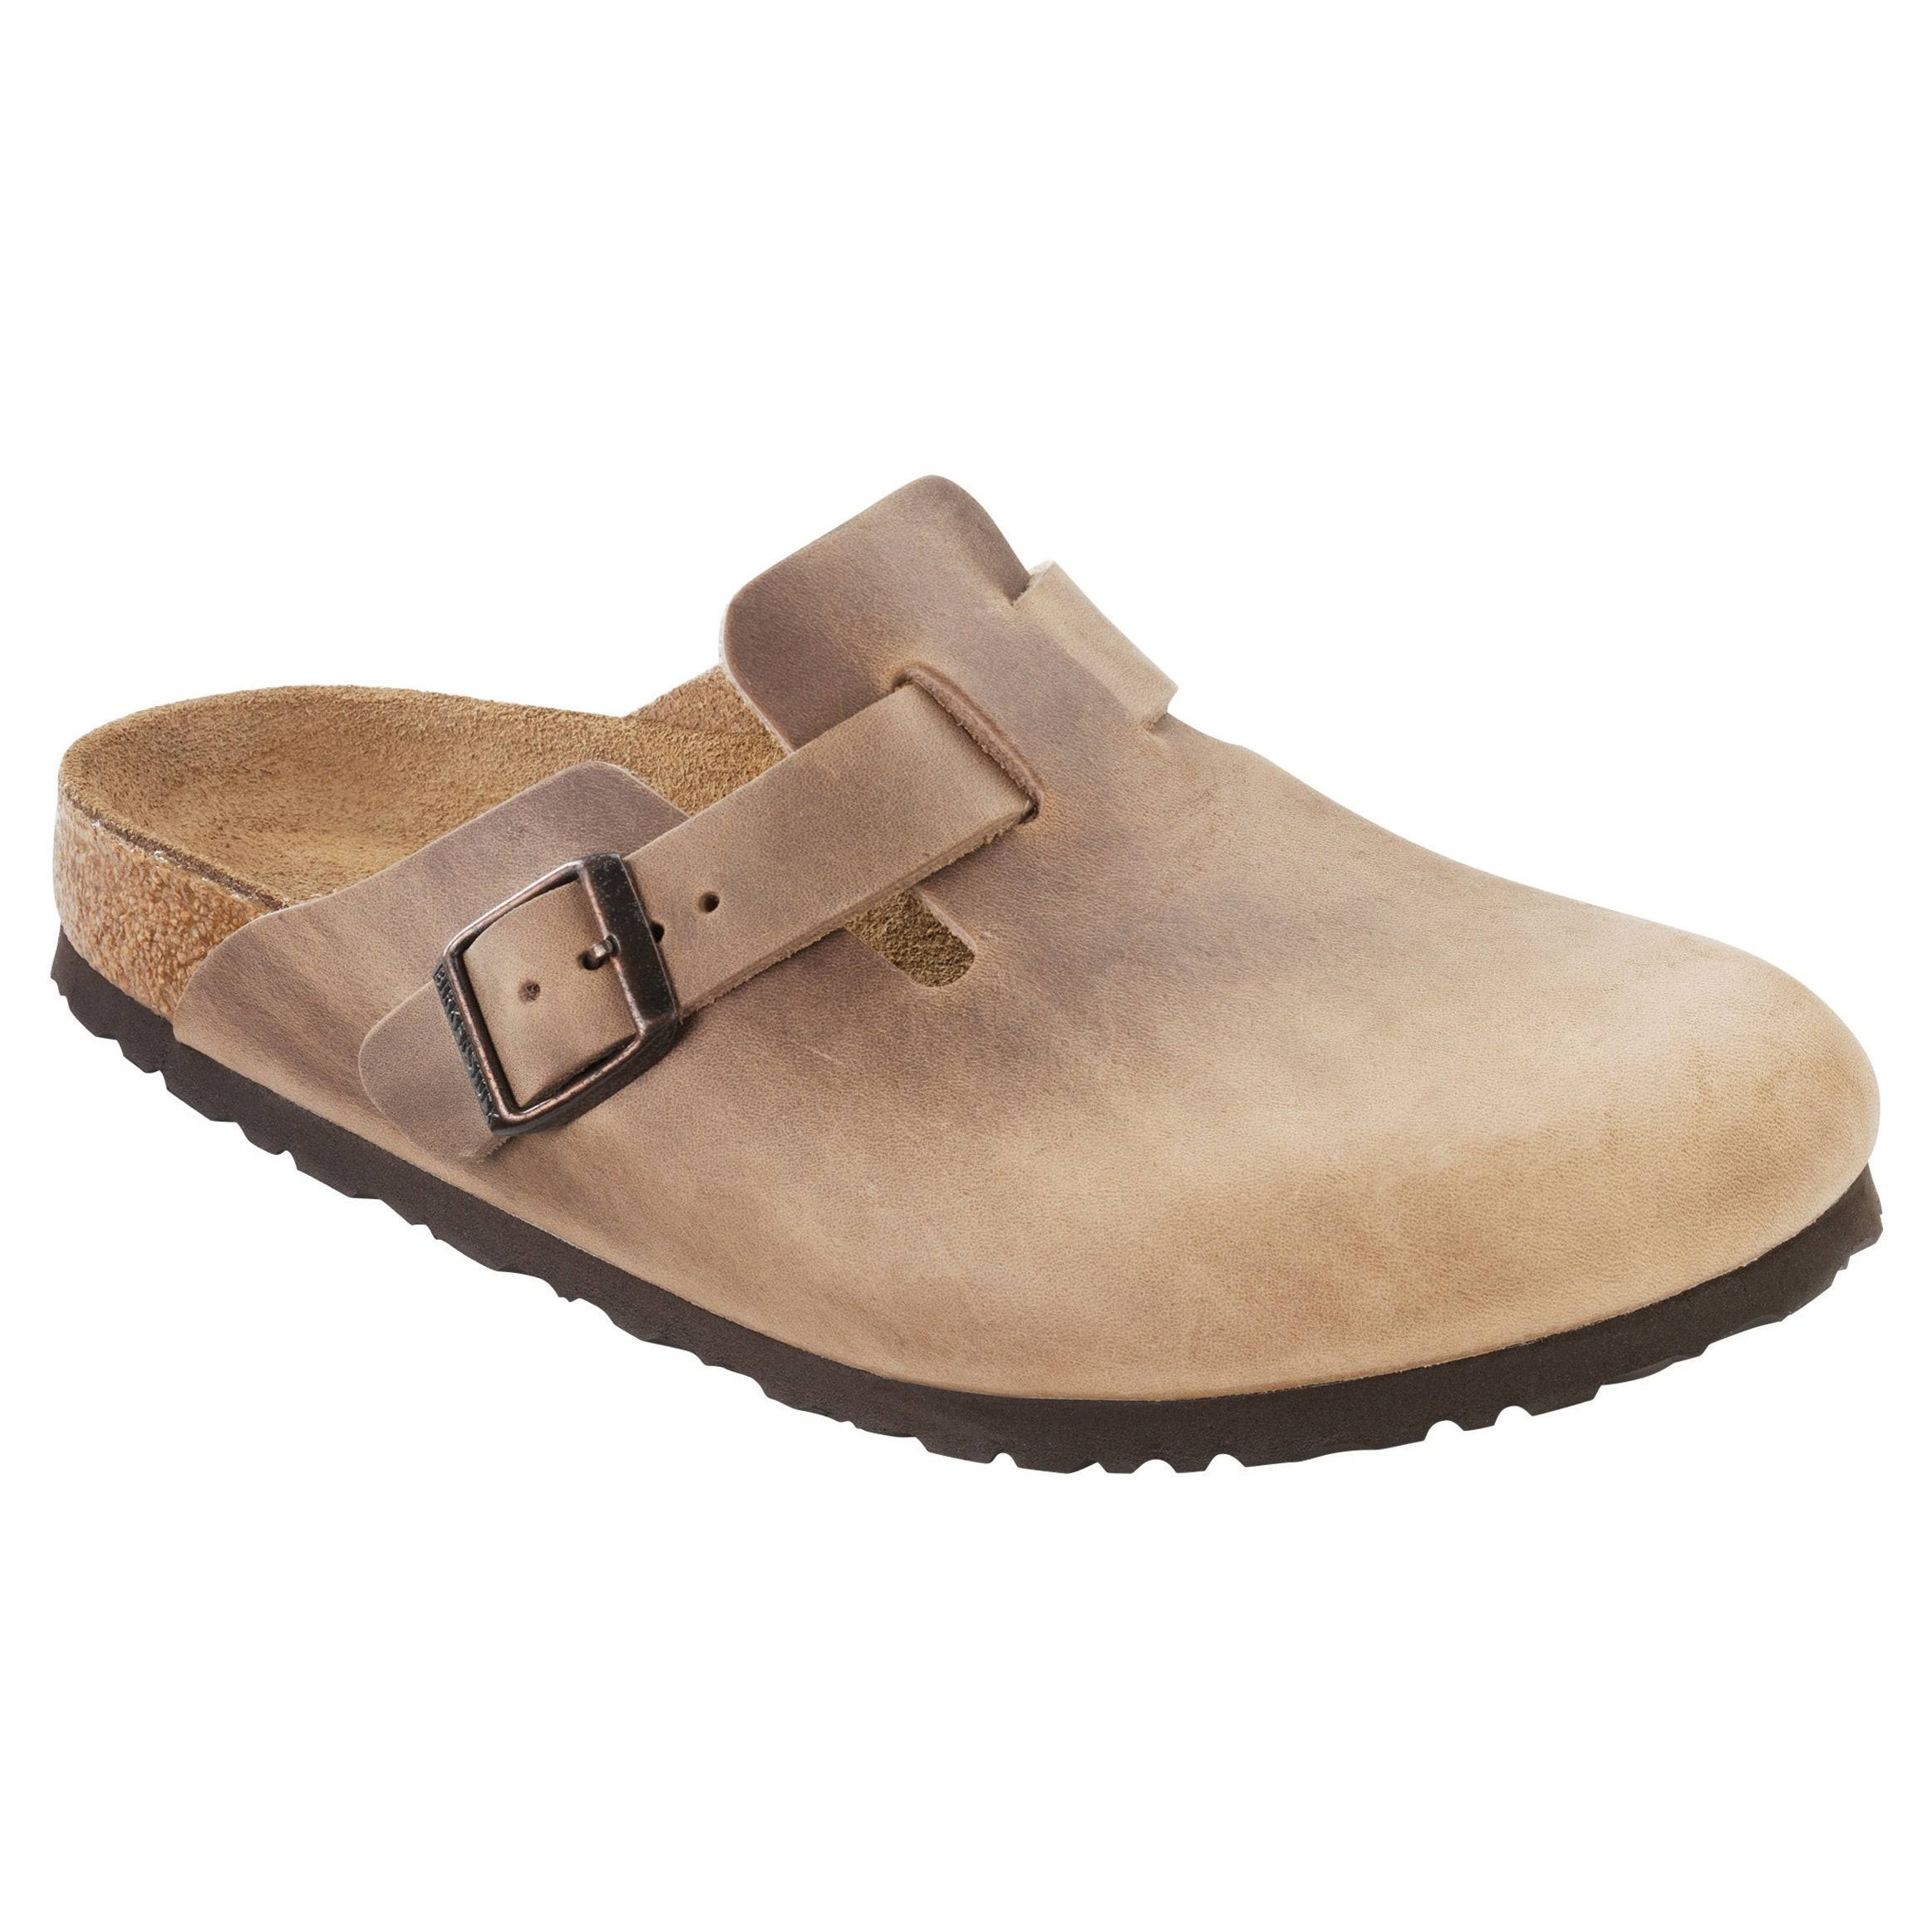 Birkenstock Boston Clog - 46 - Tobacco Oiled Leather